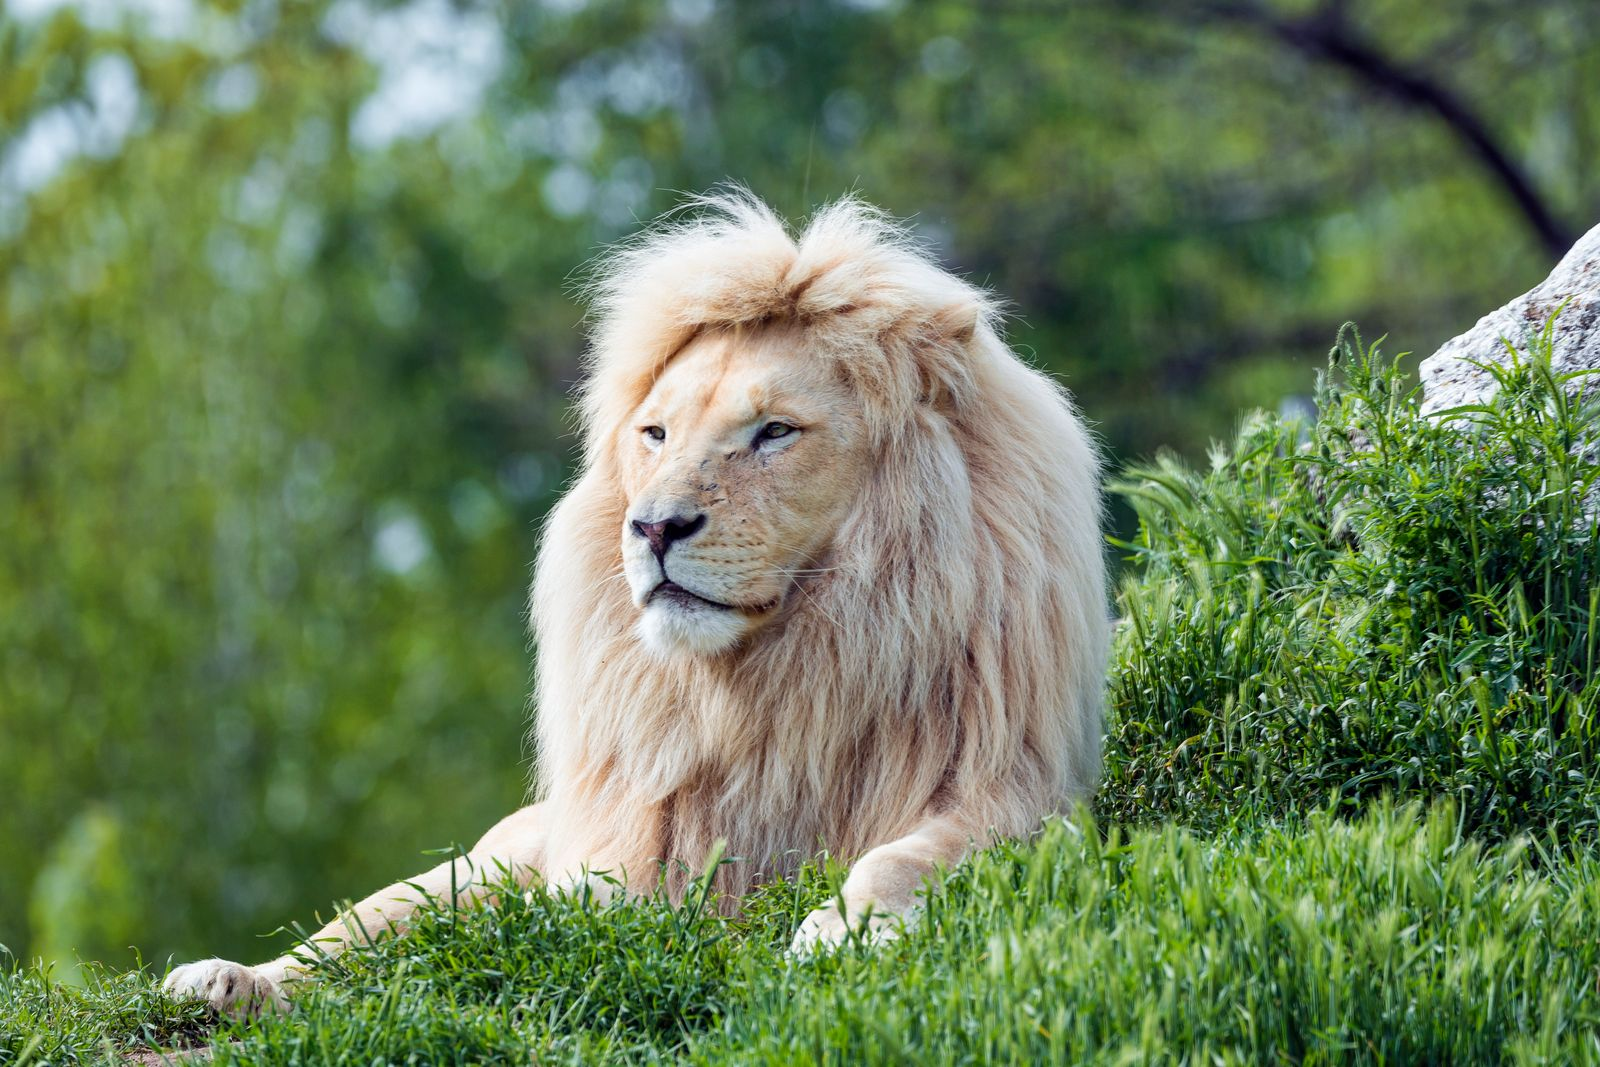 White lion in the grass